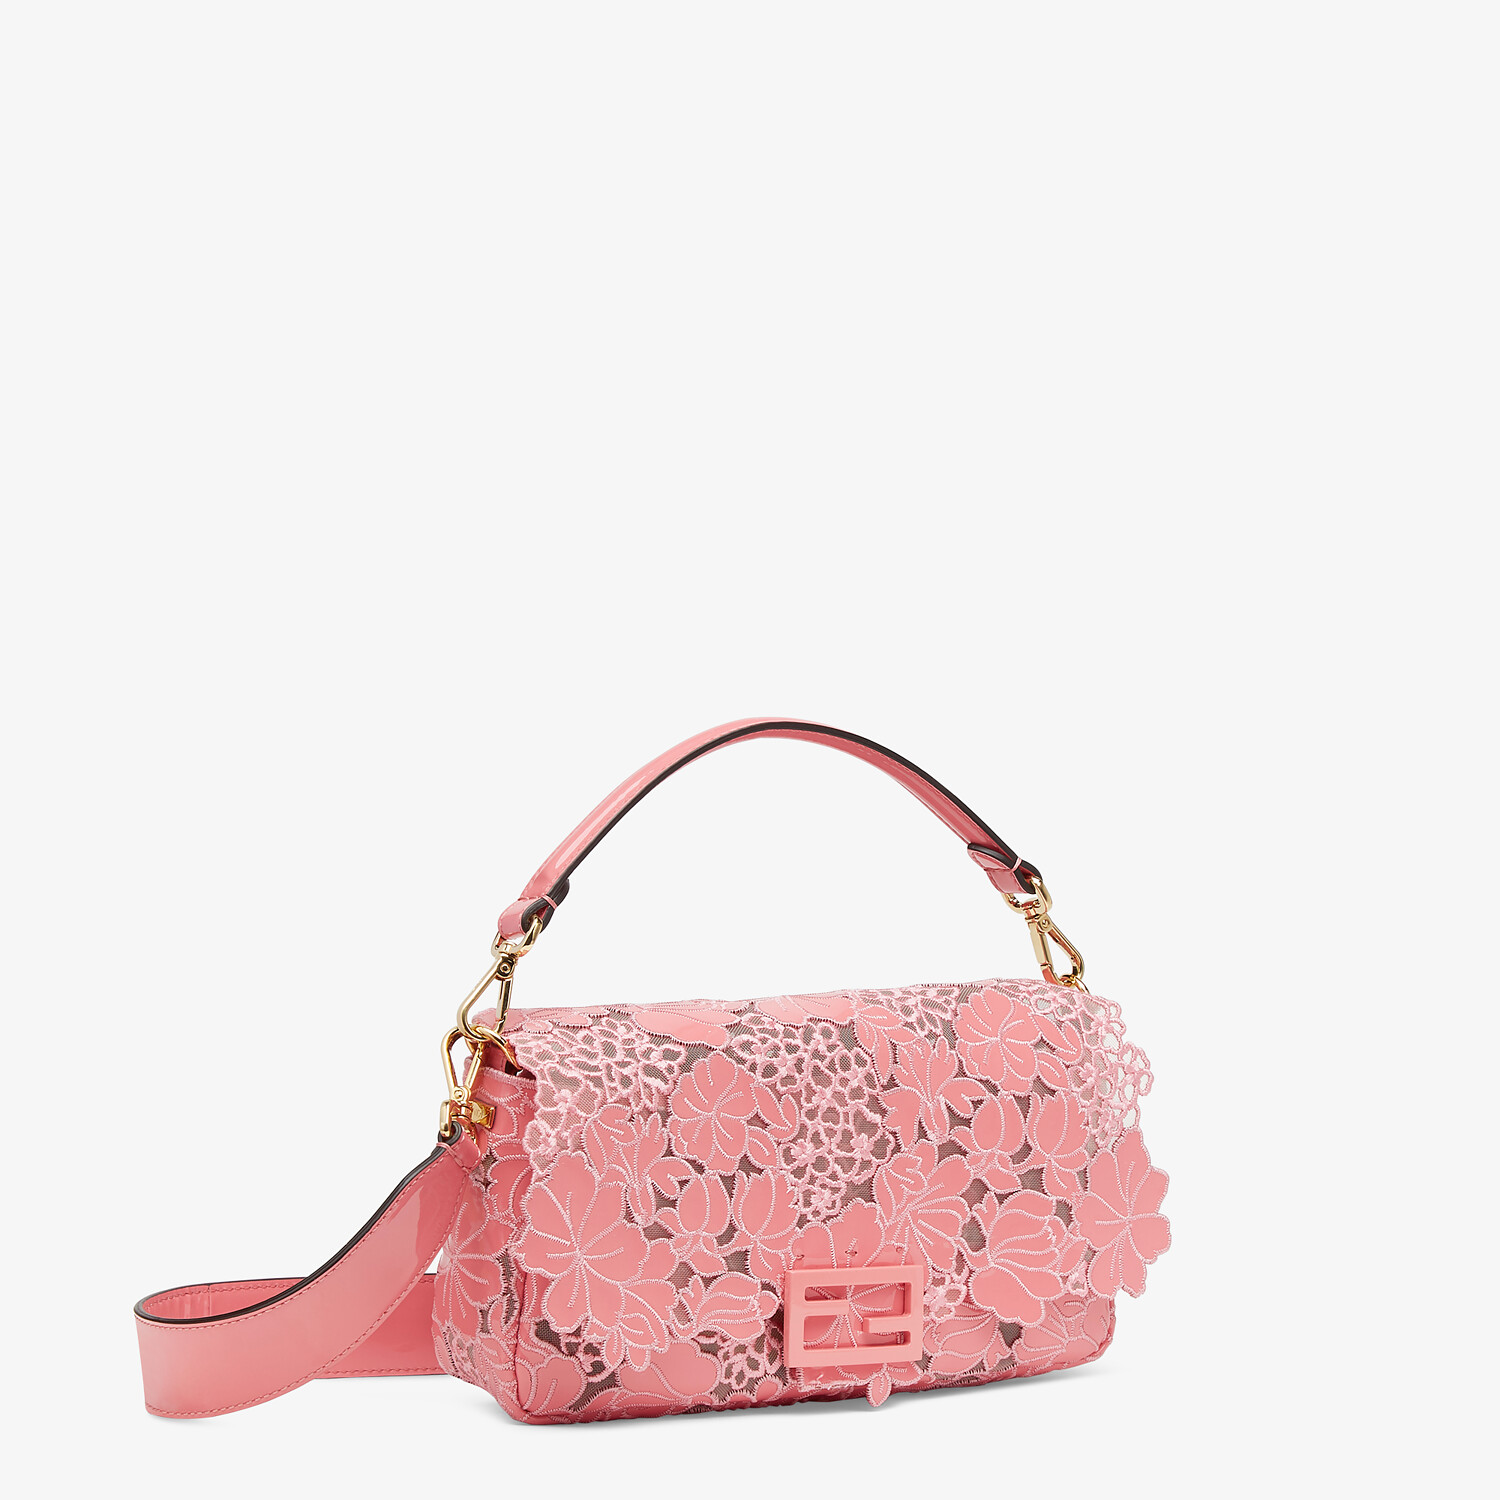 FENDI BAGUETTE - Embroidered pink patent leather bag - view 2 detail